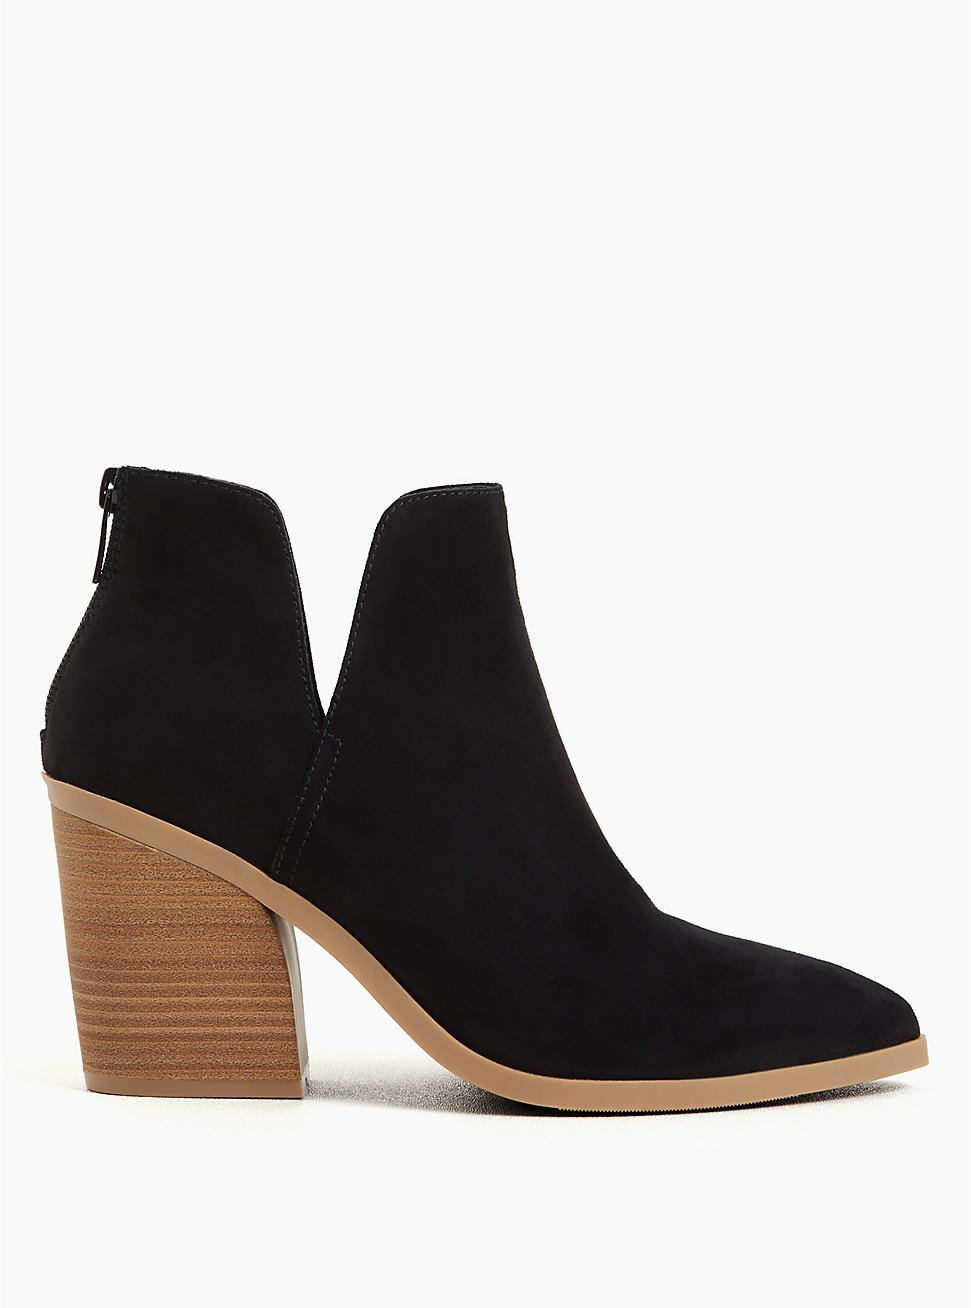 Black Faux Suede Pointed Toe V-Cut Bootie (WW), BLACK, hi-res